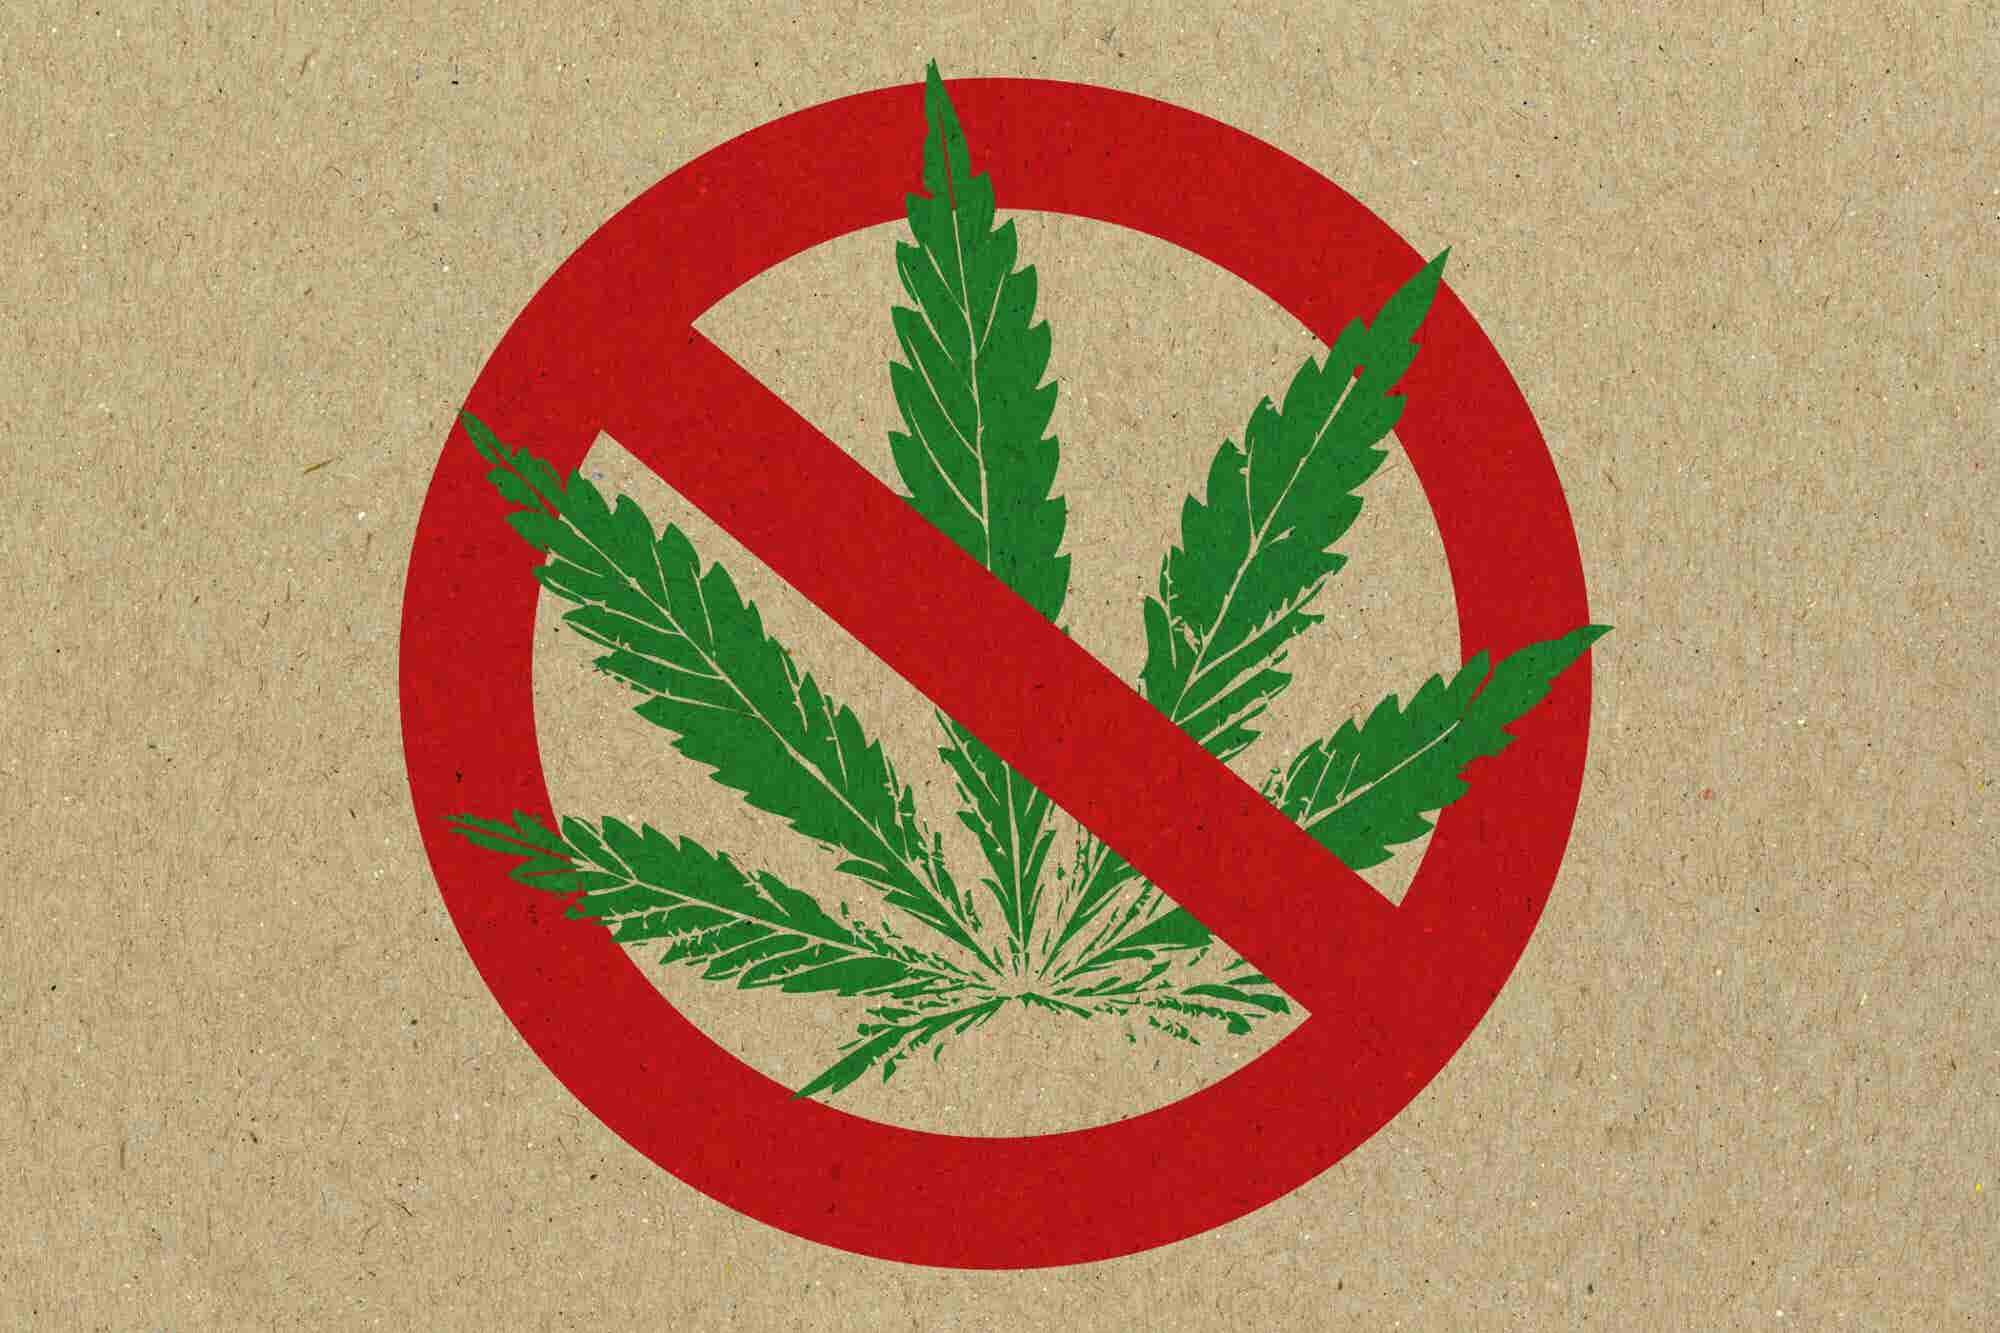 The Feds Decree There Is No Legal Marijuana Use for Immigrants